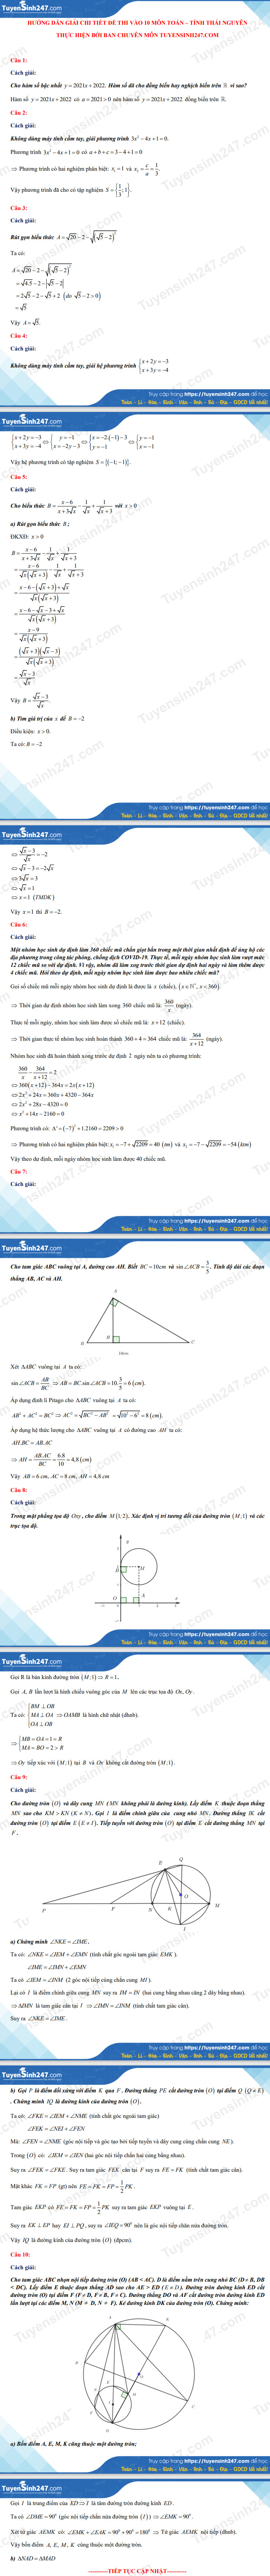 Answers to the 10th grade math exam in Thai Nguyen province 2021 3